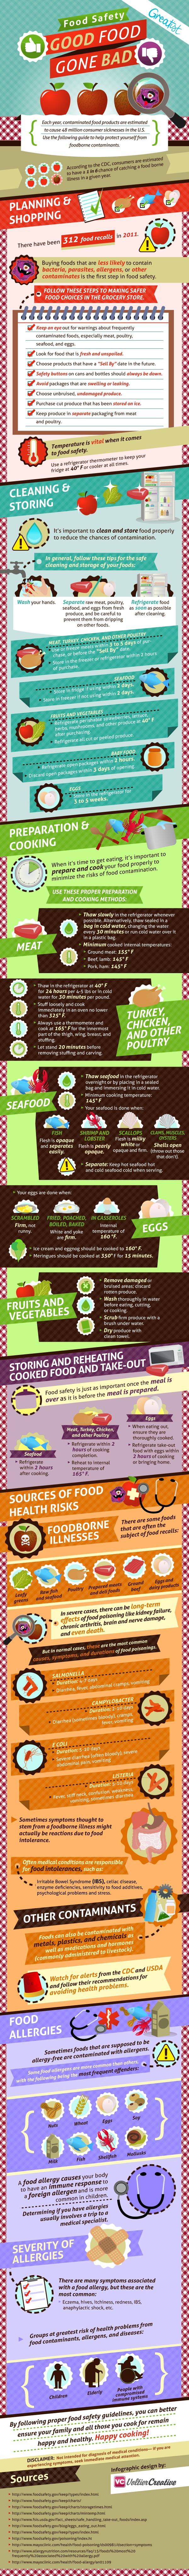 best ideas about food safety tips food safety here is a fantastic infographic about food safety and handling food good food gone bad